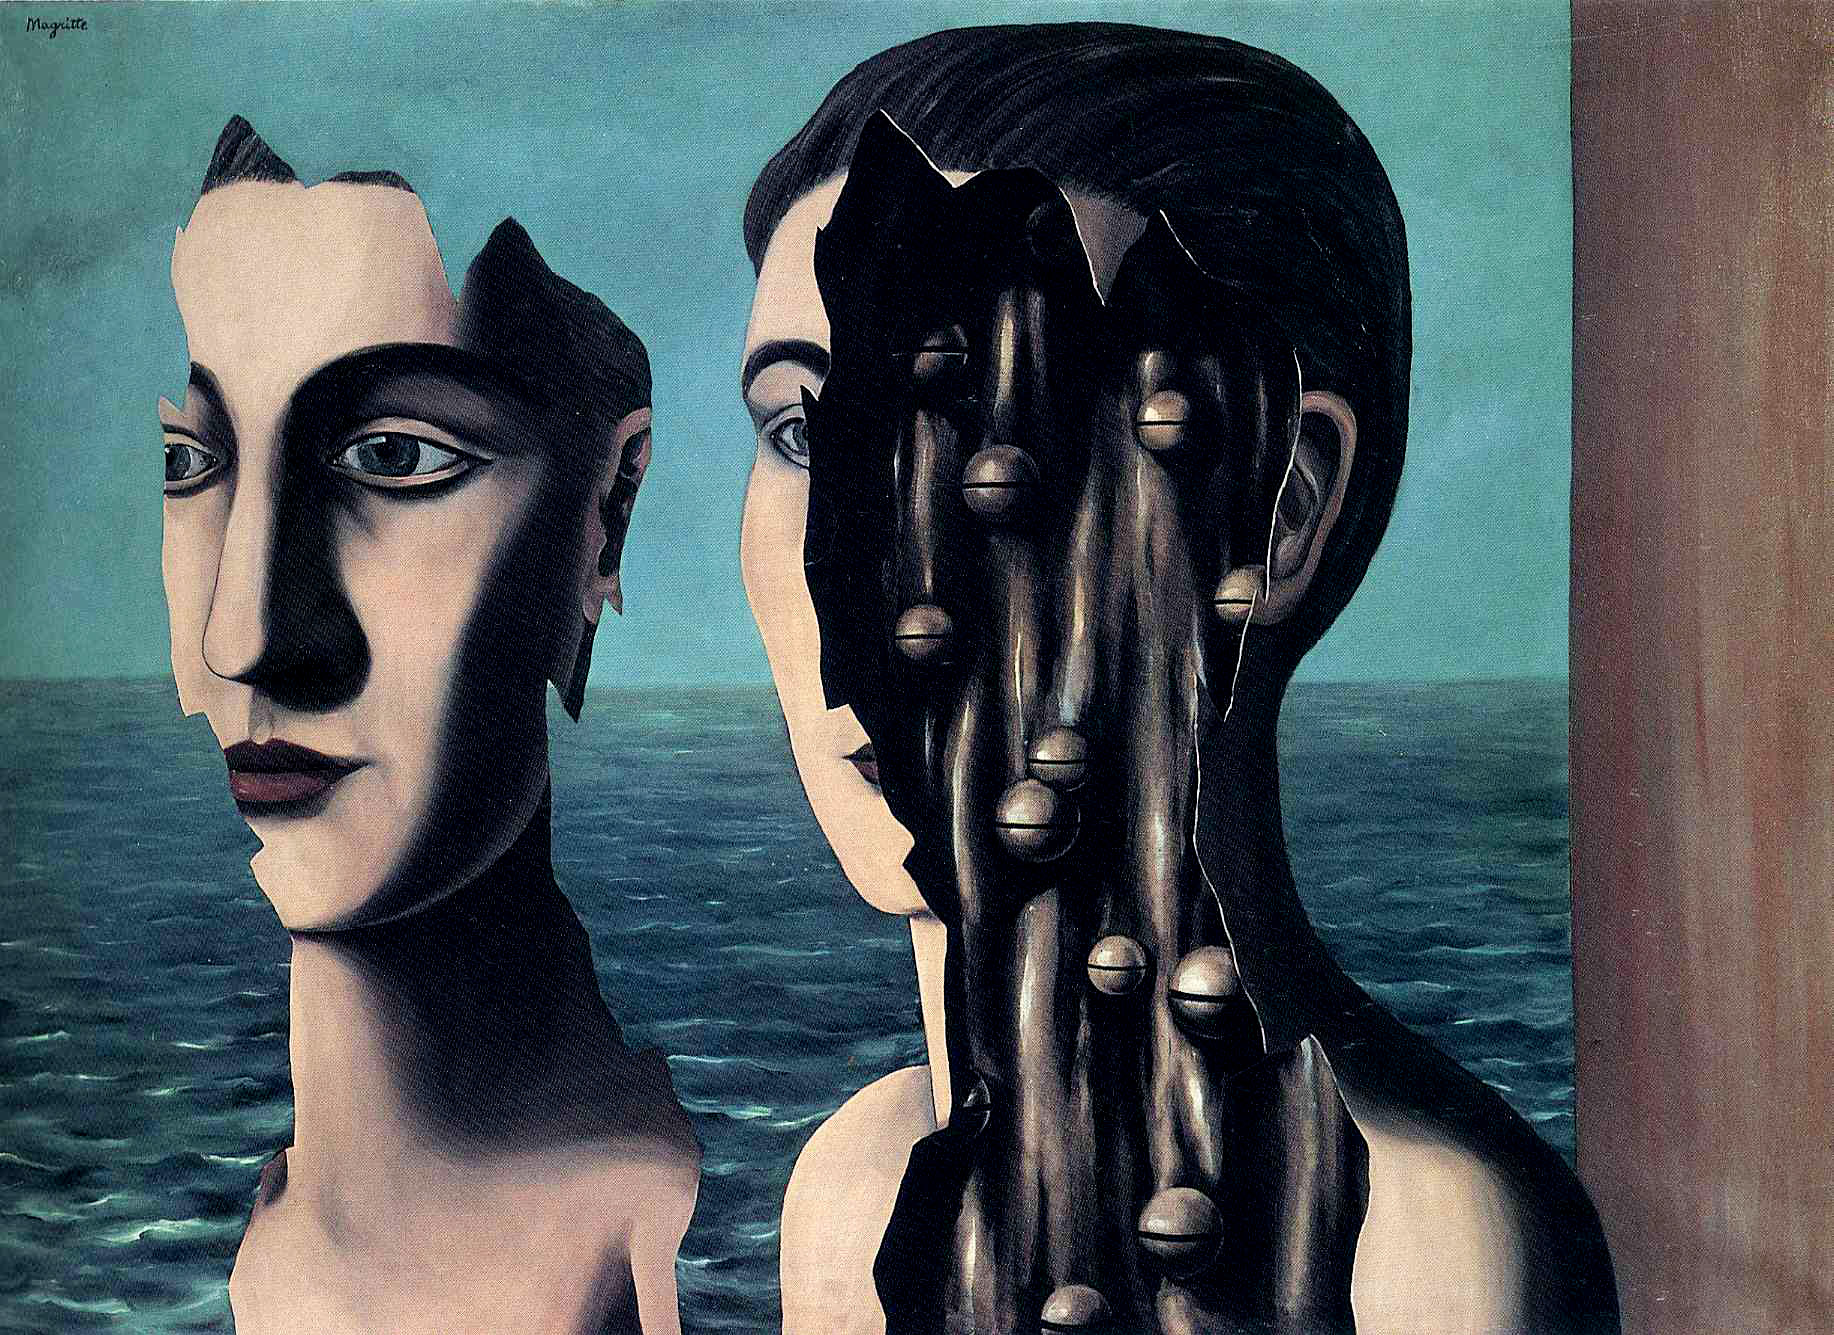 http://medicinayarte.com/img/dali_the-double-secret-1927.jpg